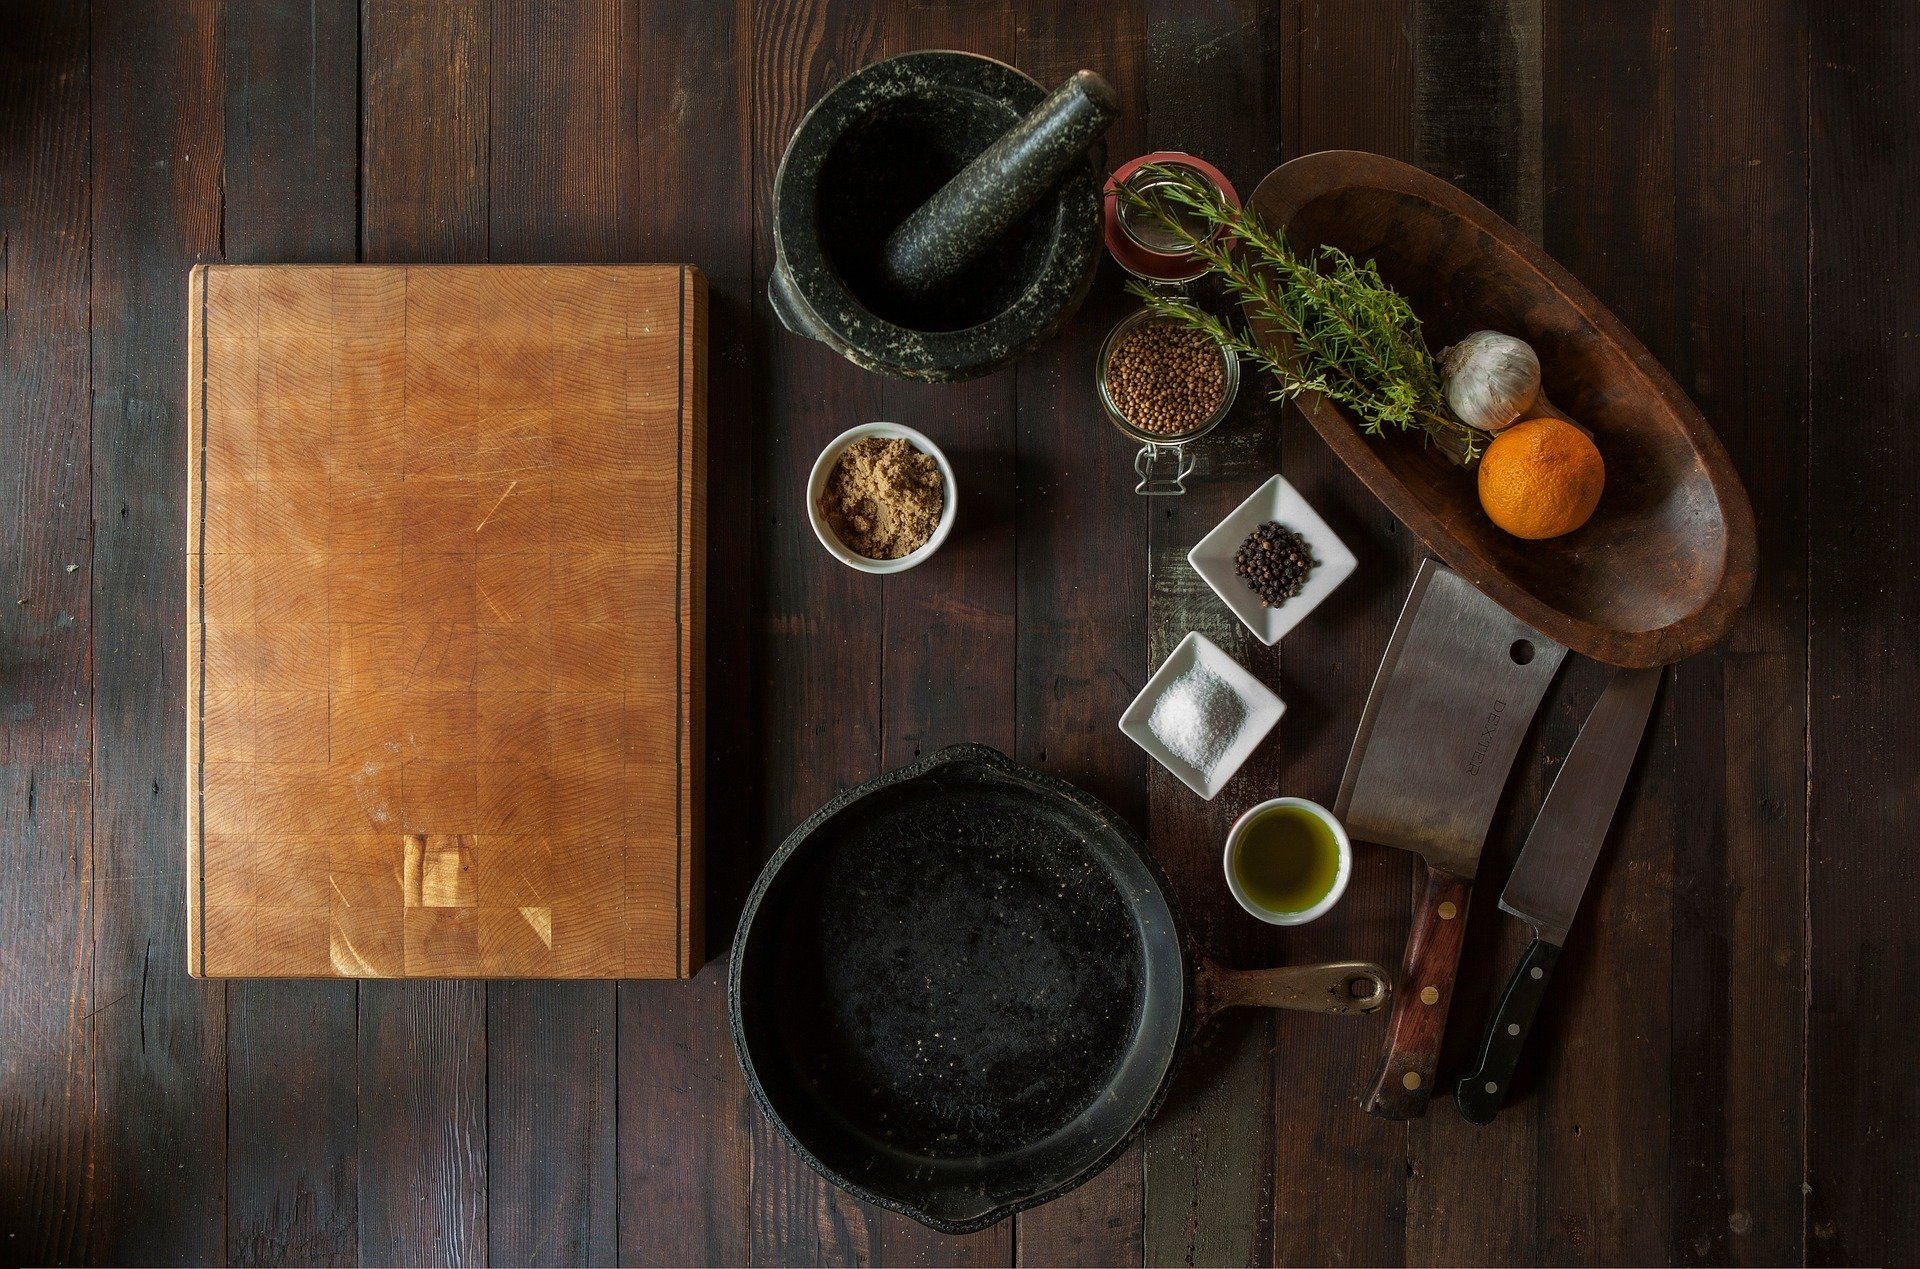 Can you cook with essential oils?